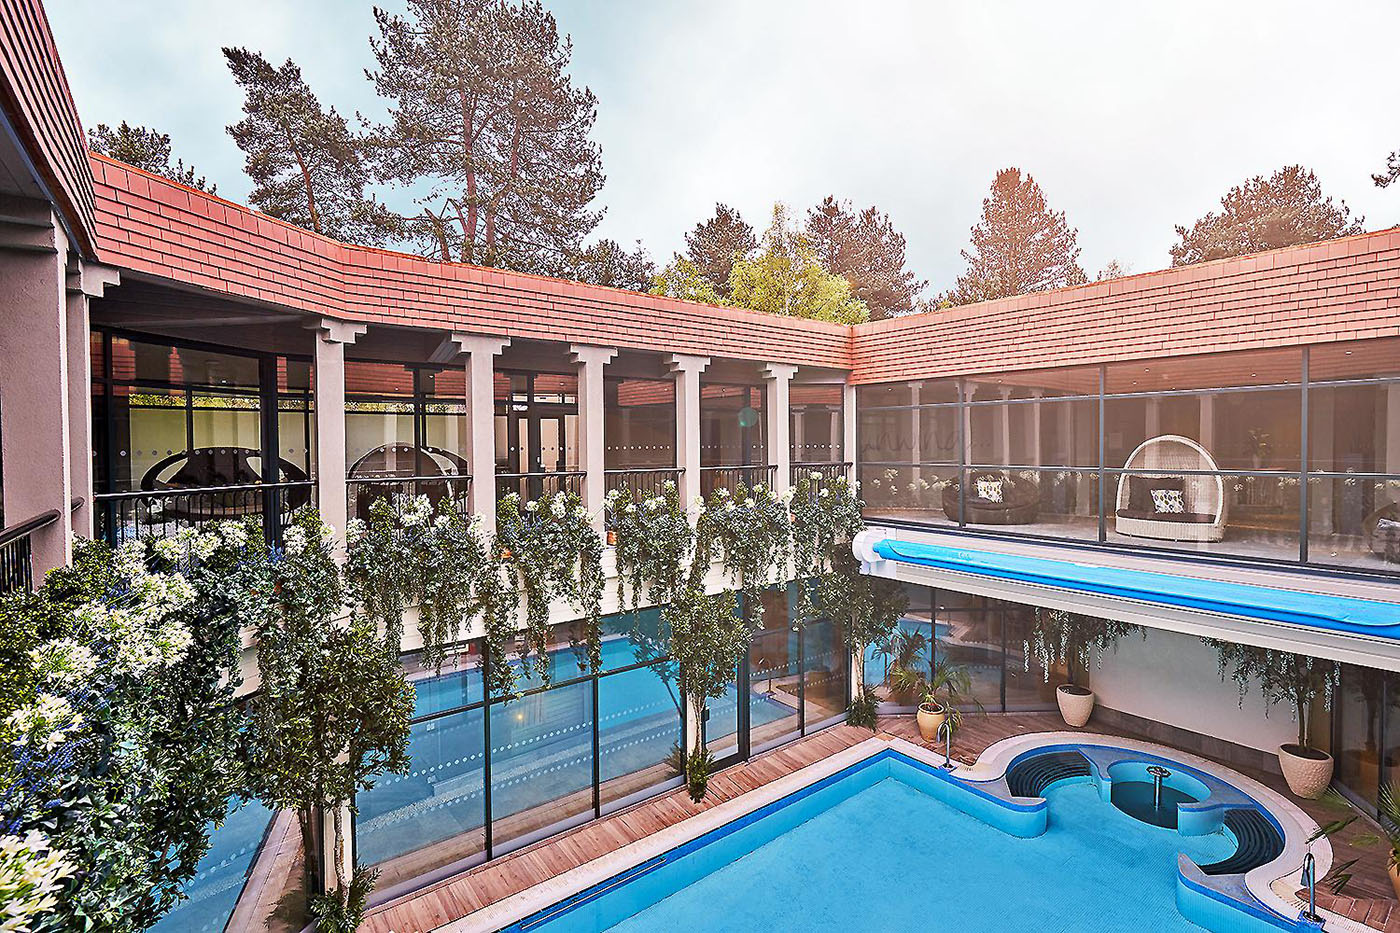 View from second floor of spa overlooking courtyard swimming pool